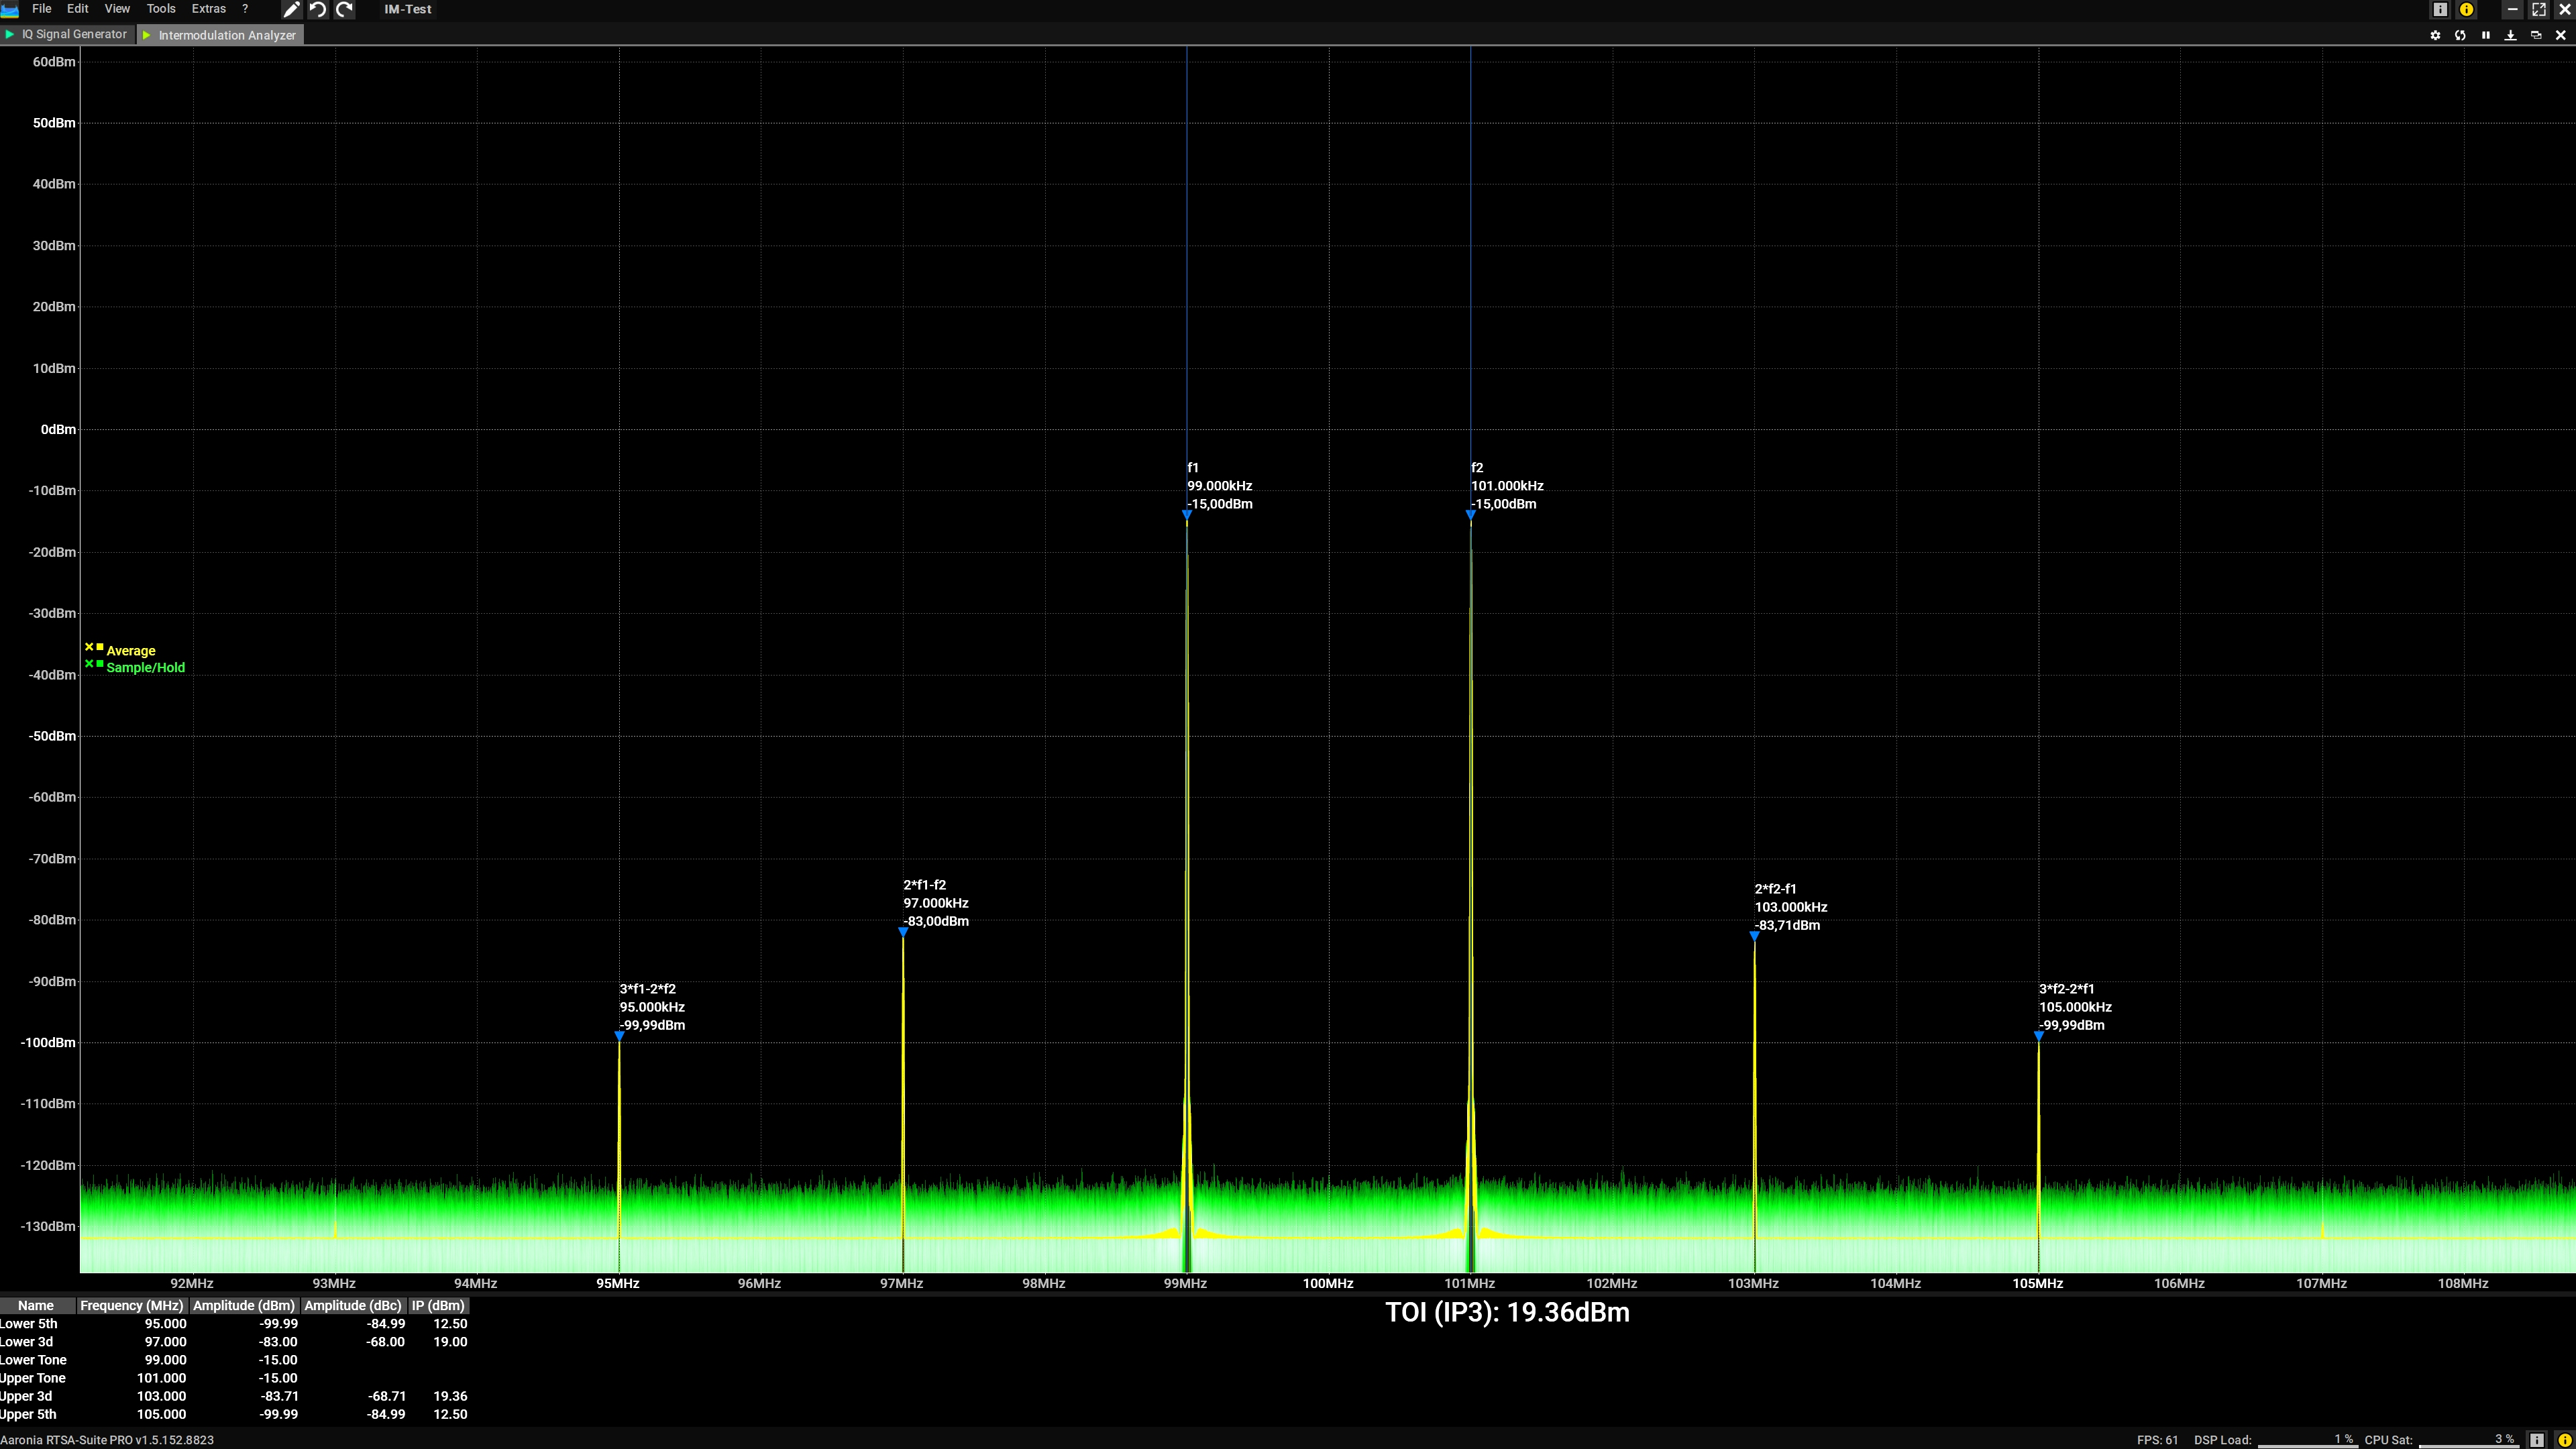 Intermodulation Measurement with IP3 and IP5